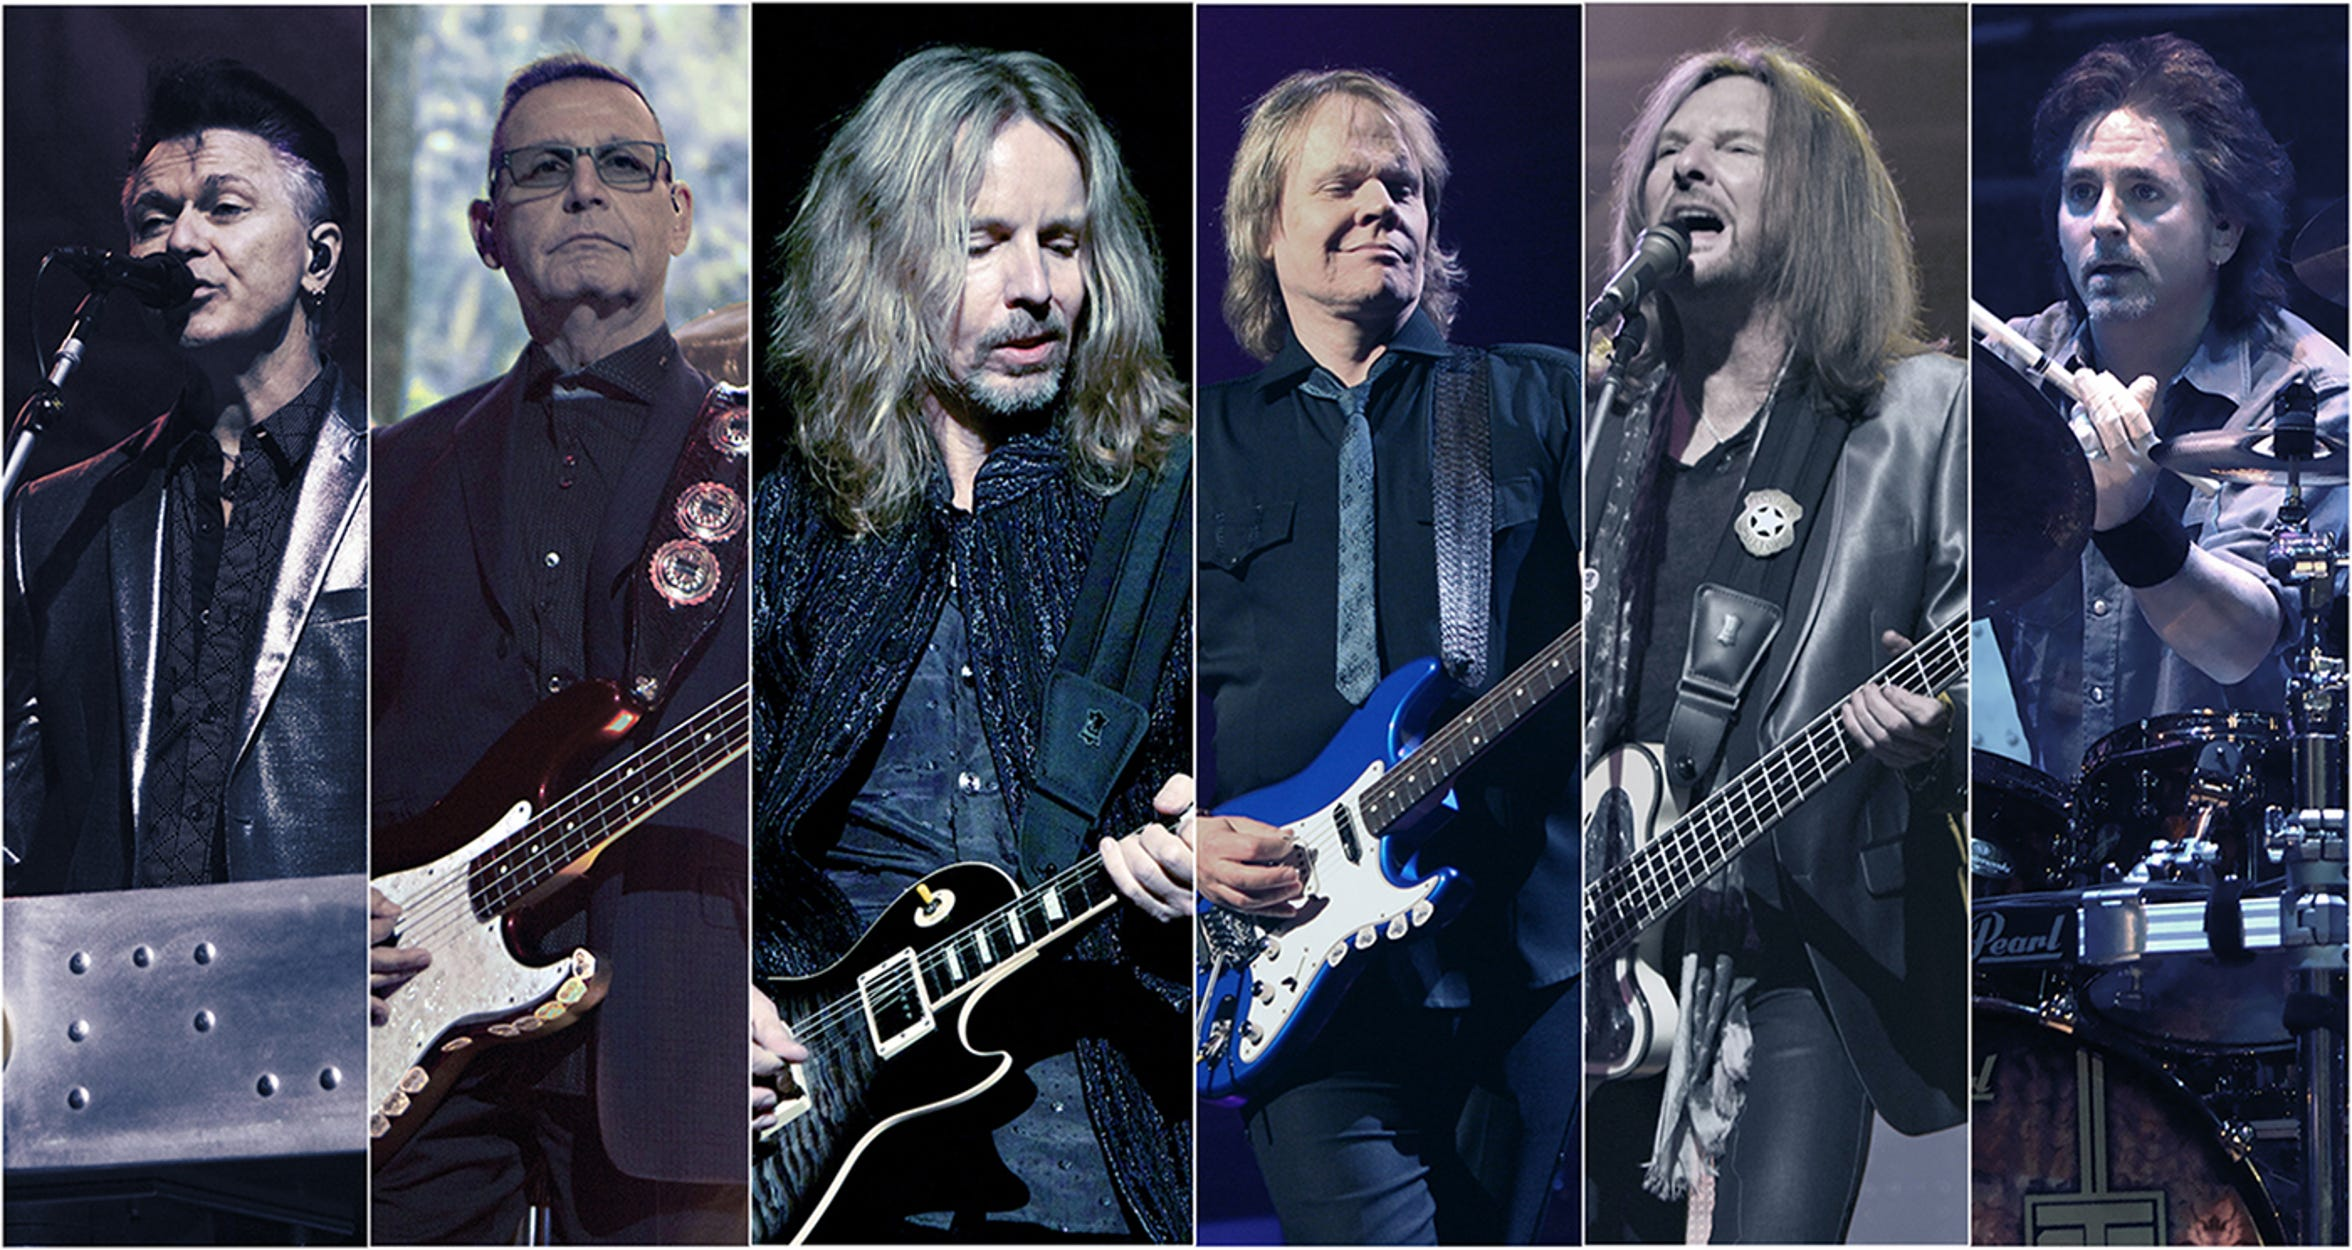 Styx has featured several changes in personnel over the past 45 years, due in part to the deaths of two original members.